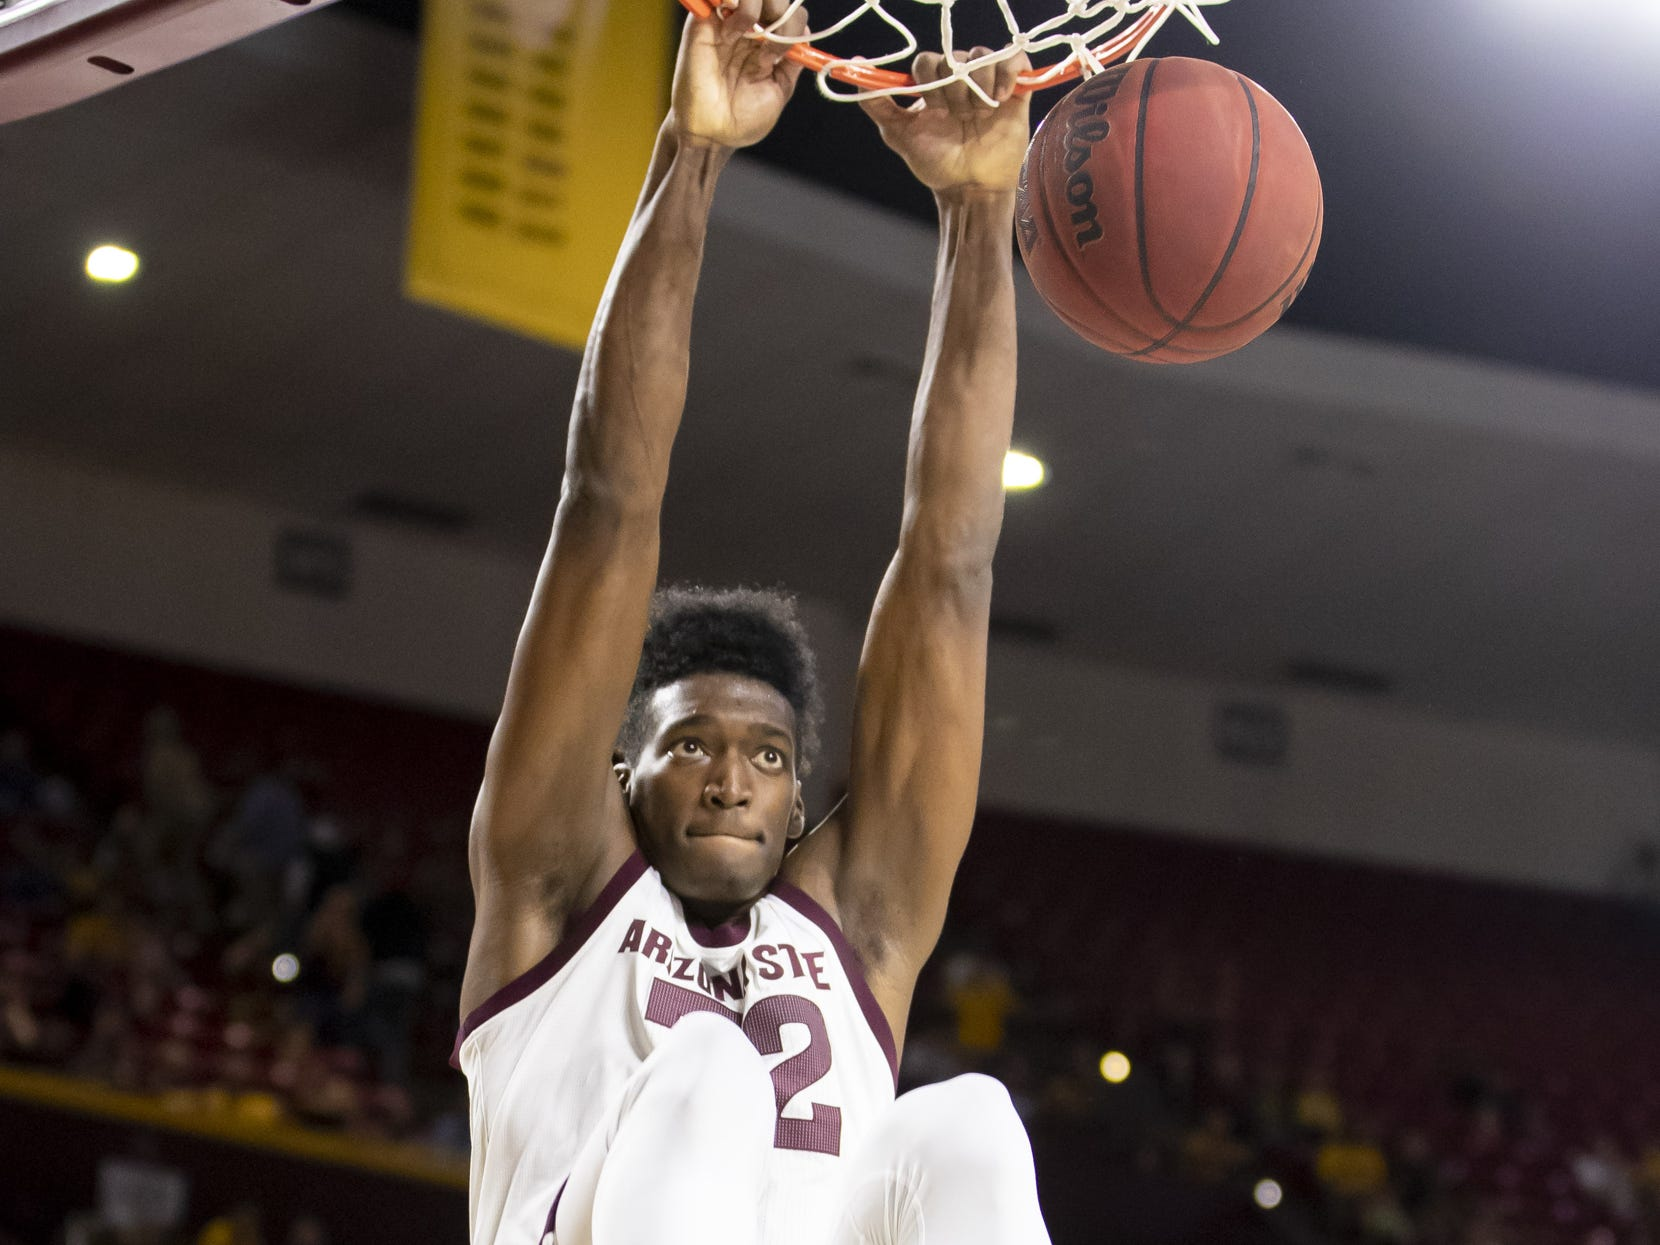 Forward De'Quon Lake (32) of the Arizona State Sun Devils dunks against the Cal State Fullerton Titans at Wells Fargo Arena on Tuesday, November 6, 2018 in Tempe, Arizona.